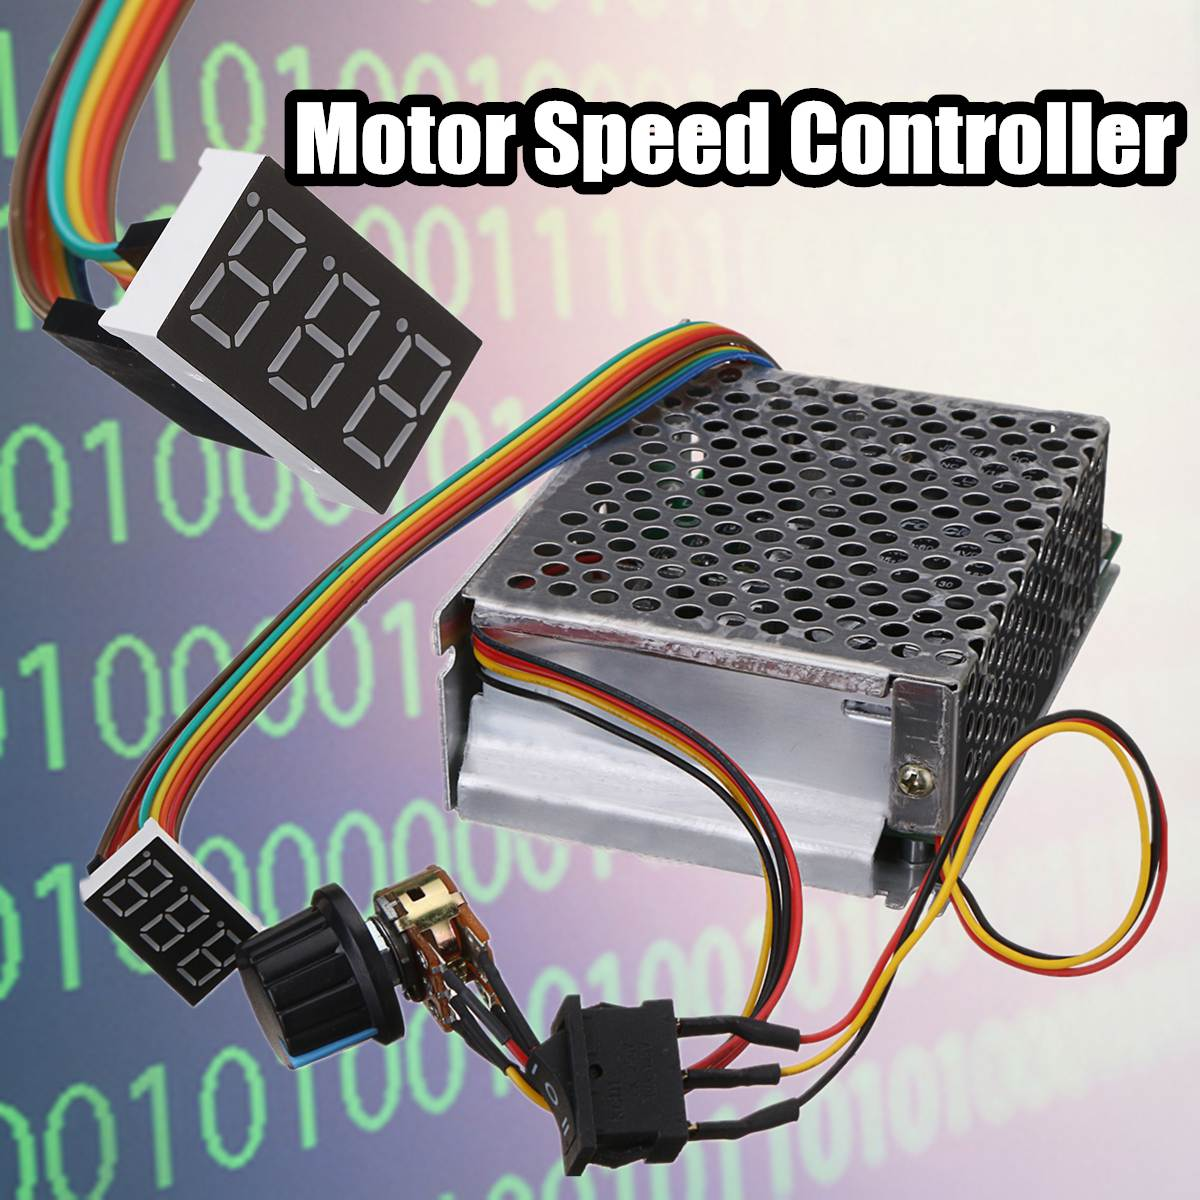 1Pcs DC10-50V 60A 3000W Reversible DC Motor Speed Controller PWM Control 12V 24V 36V 48V Reversible Switch Digital Display цена